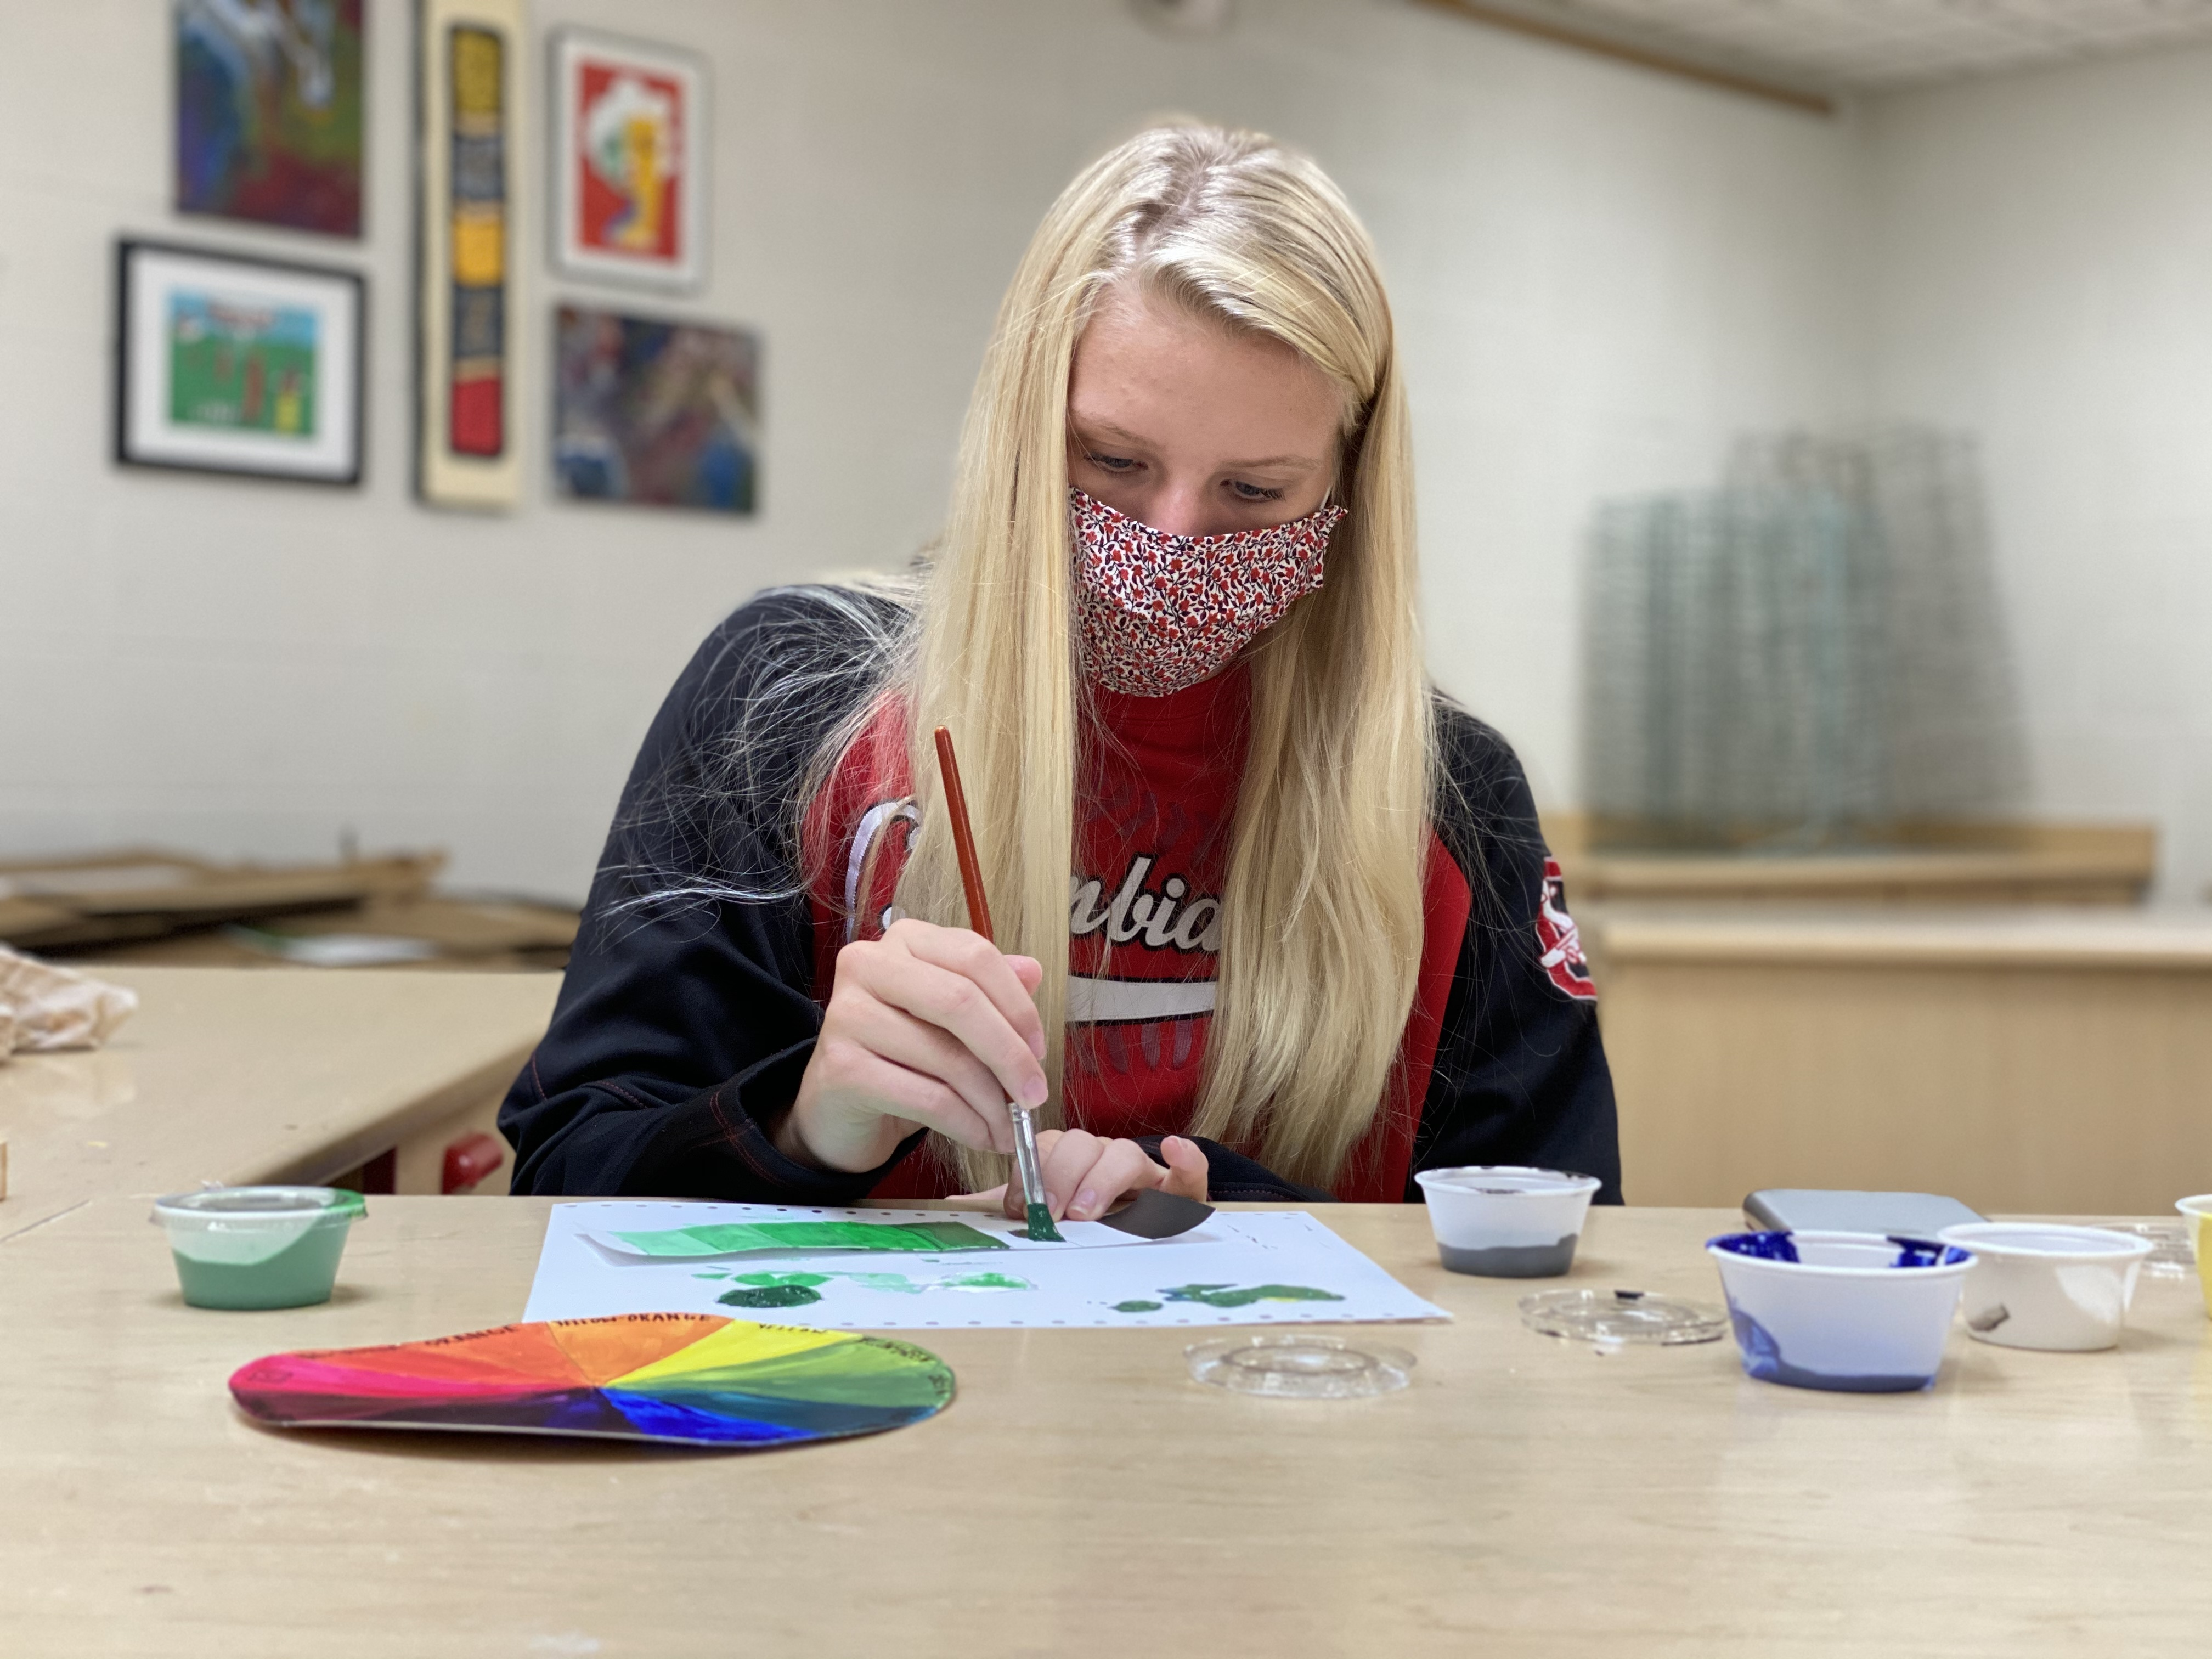 CHS student working on art assignment